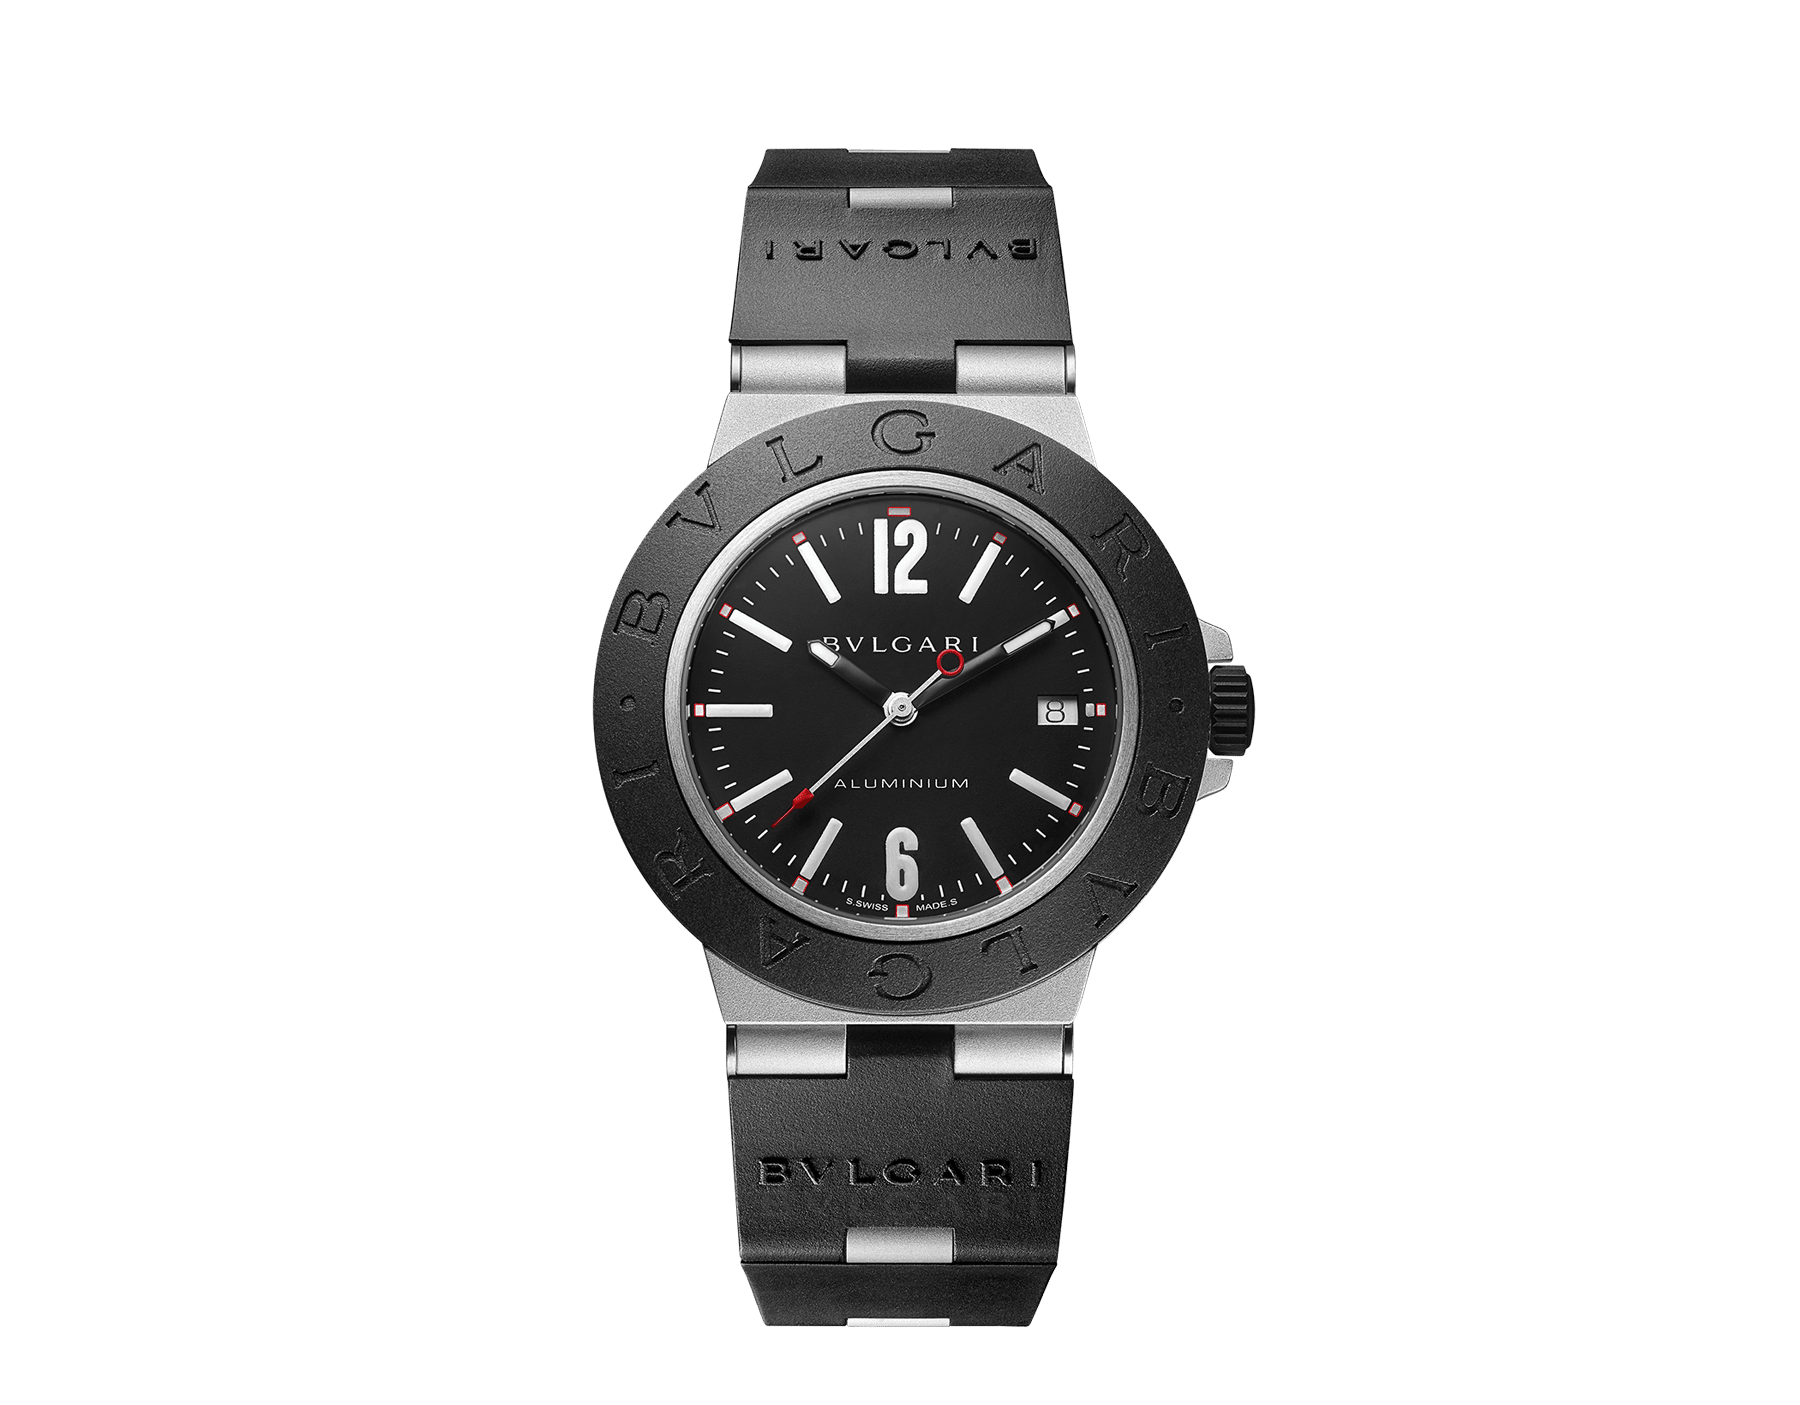 Bvlgari Aluminium watch with mechanical movement with automatic winding, 40 mm aluminum and titanium case, black rubber bezel with BVLGARI BVLGARI engraving, black dial and black rubber bracelet. Water-resistant up to 100 meters. 103445 image 1